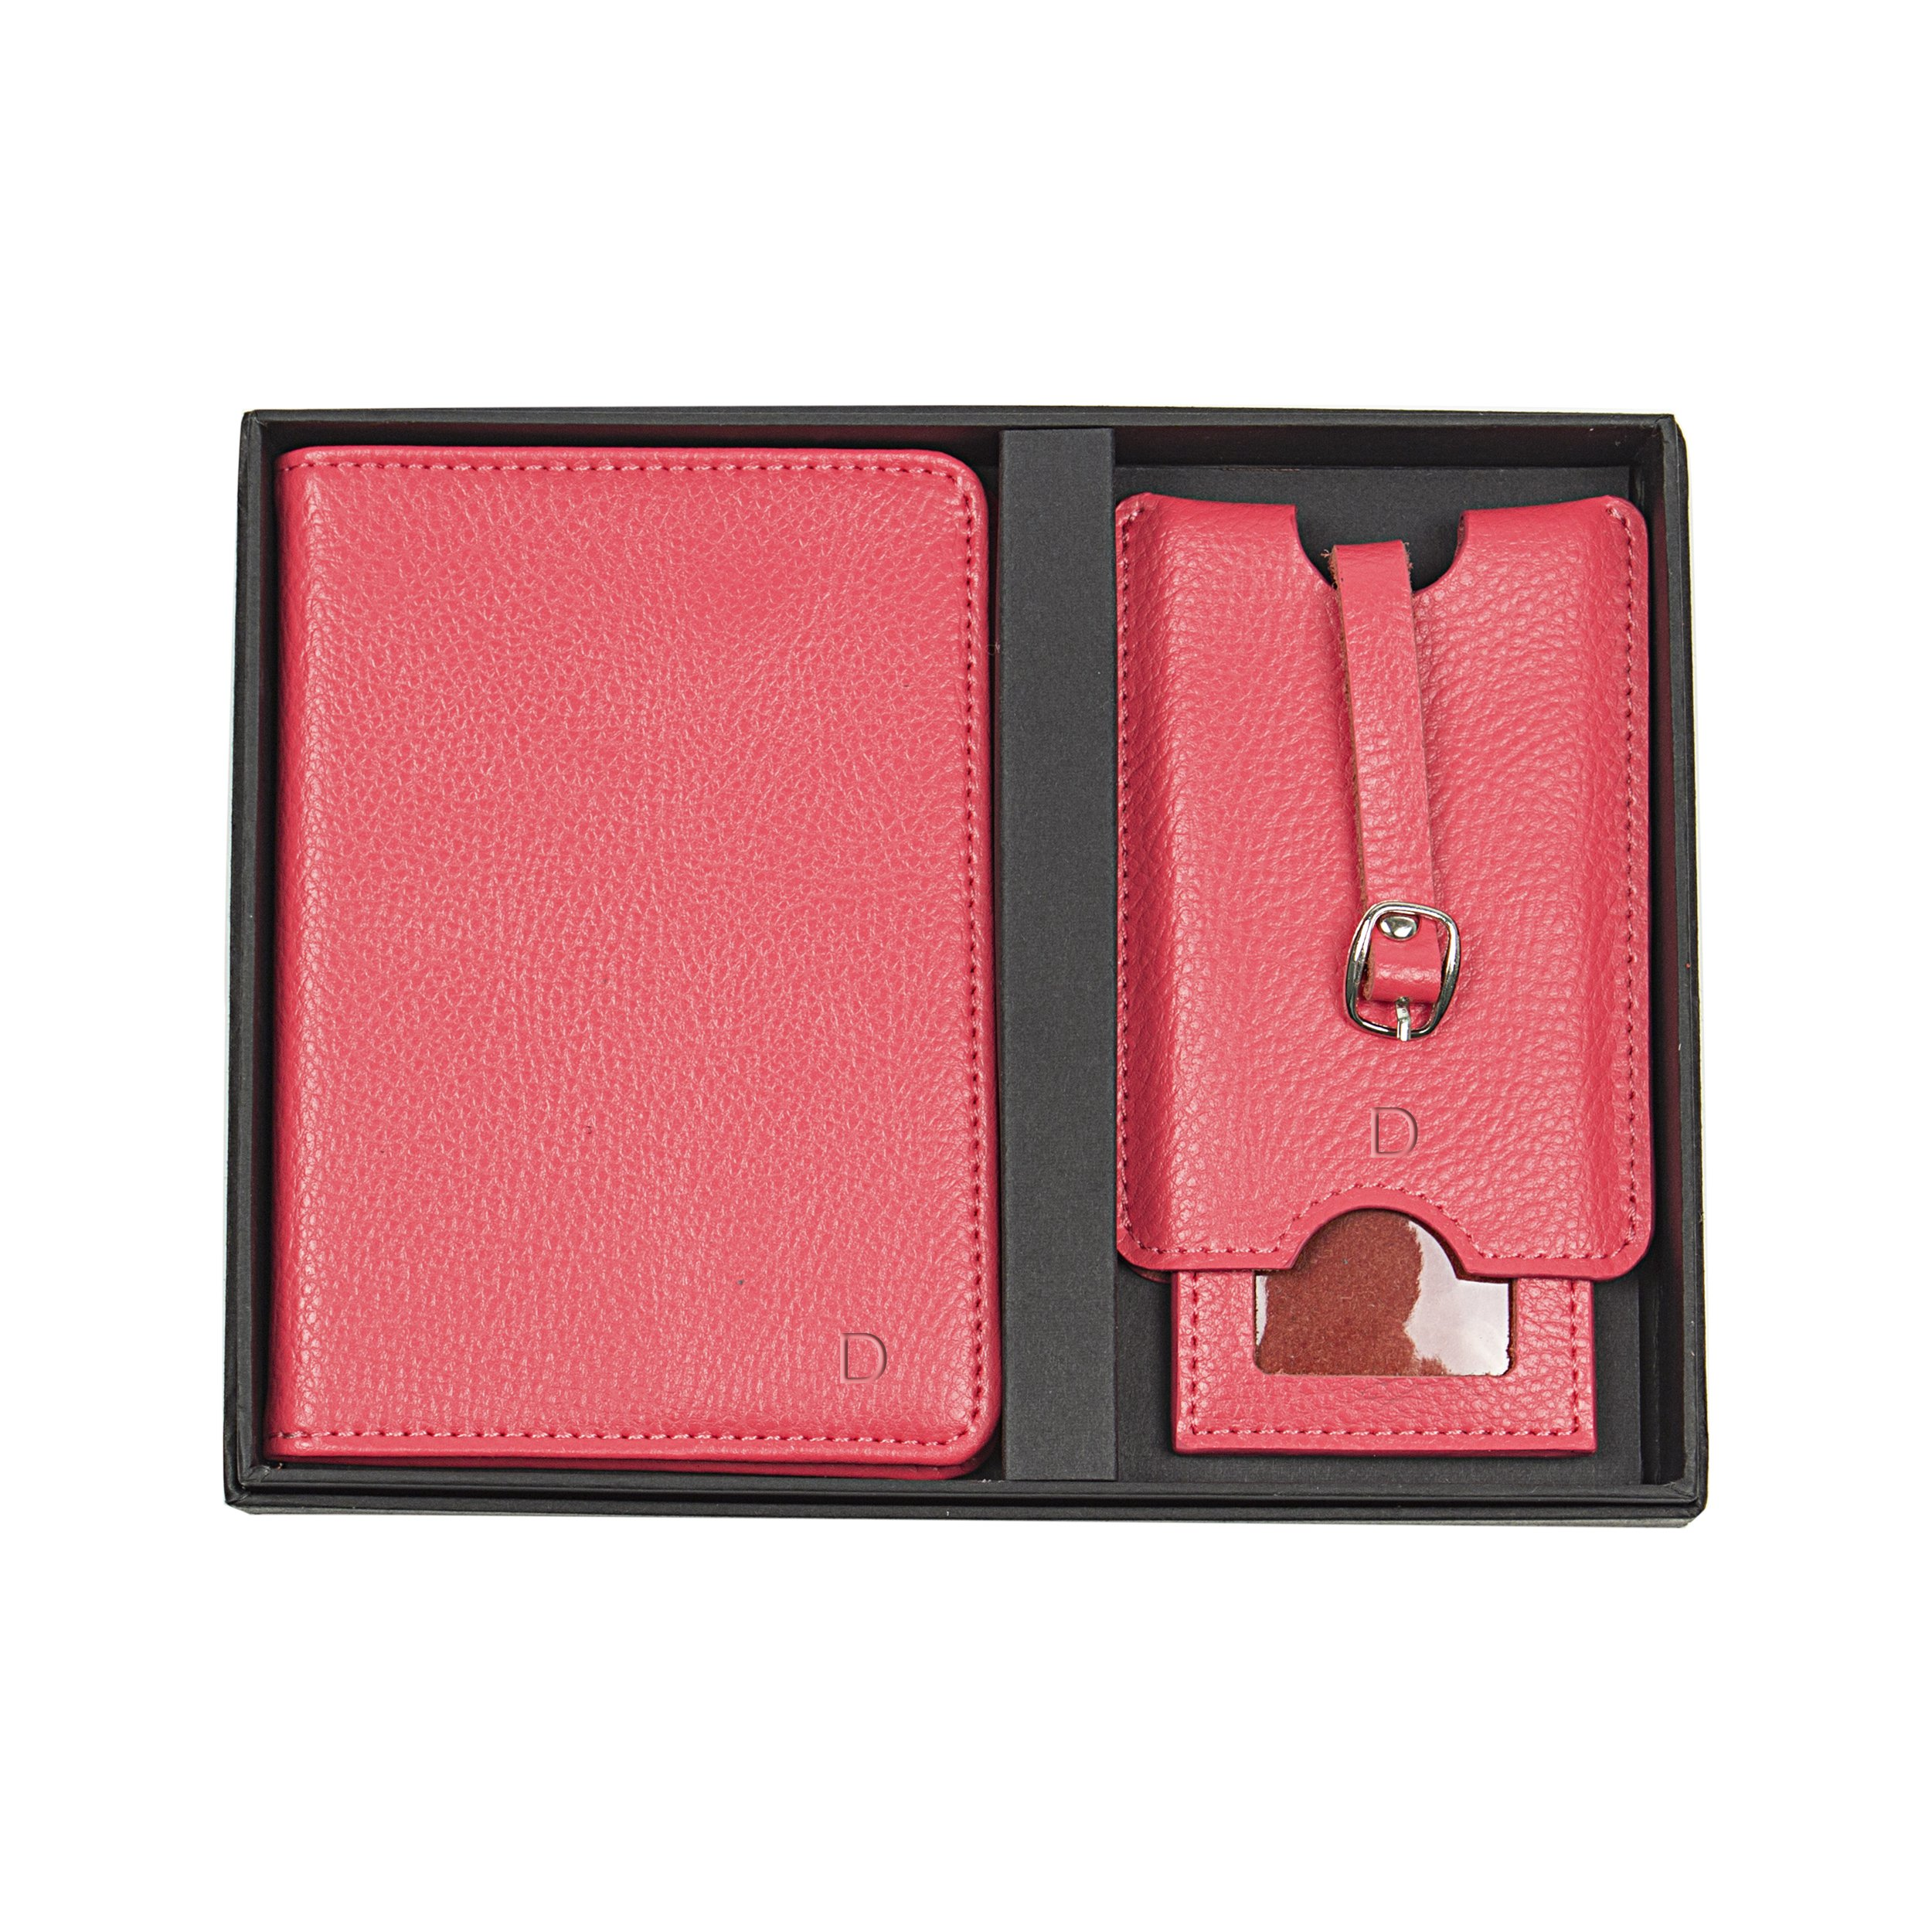 Cathy's Concepts Personalized Leather Passport Holder & Luggage Tag Set, Pink, Letter D